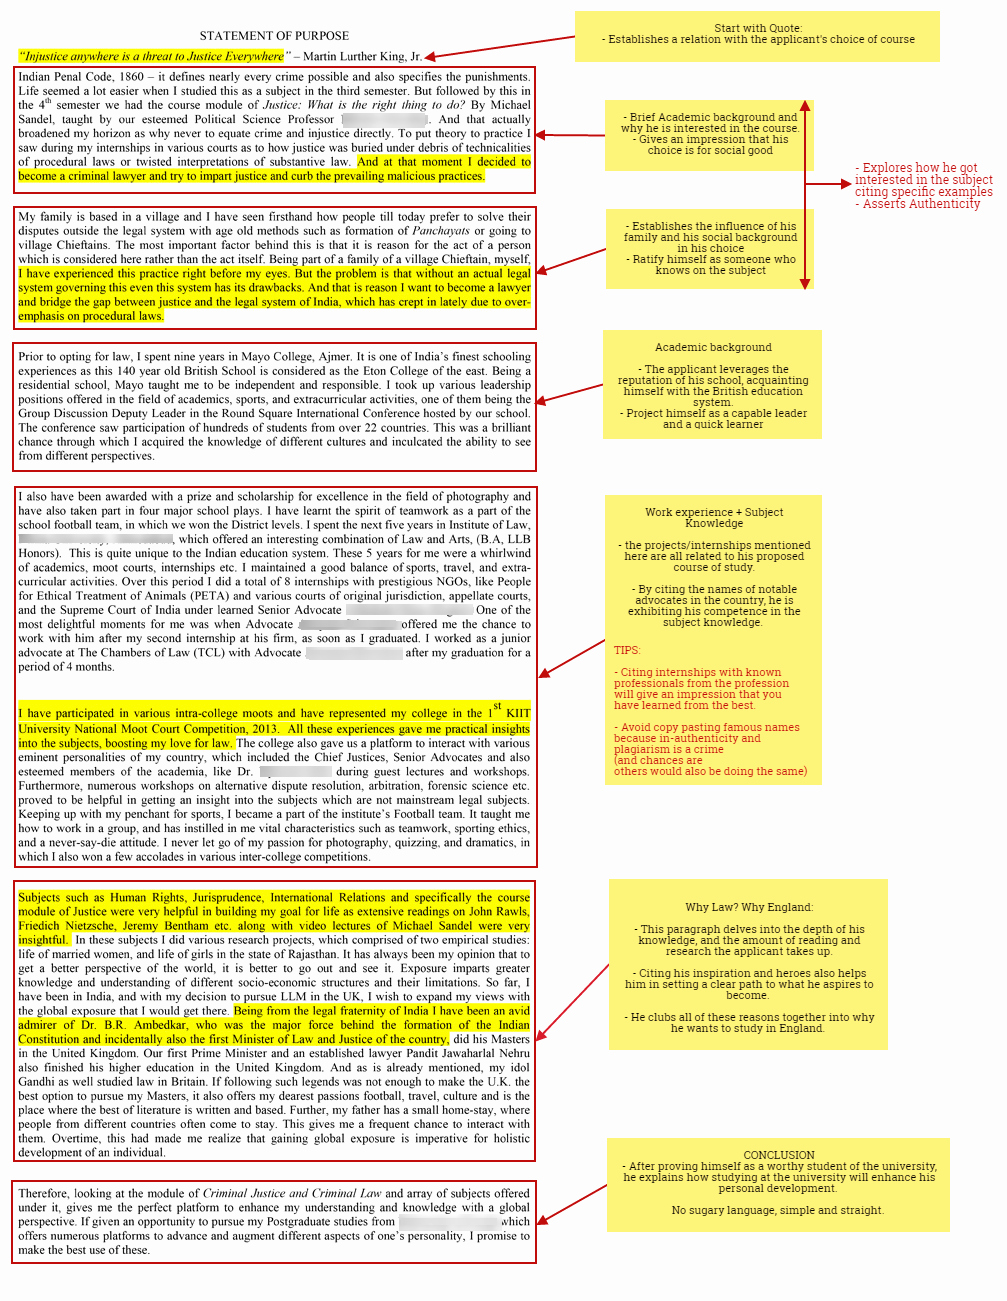 U Visa Personal Statement Sample Inspirational How to Write A Winning Statement Of Purpose with 2 Sample sop